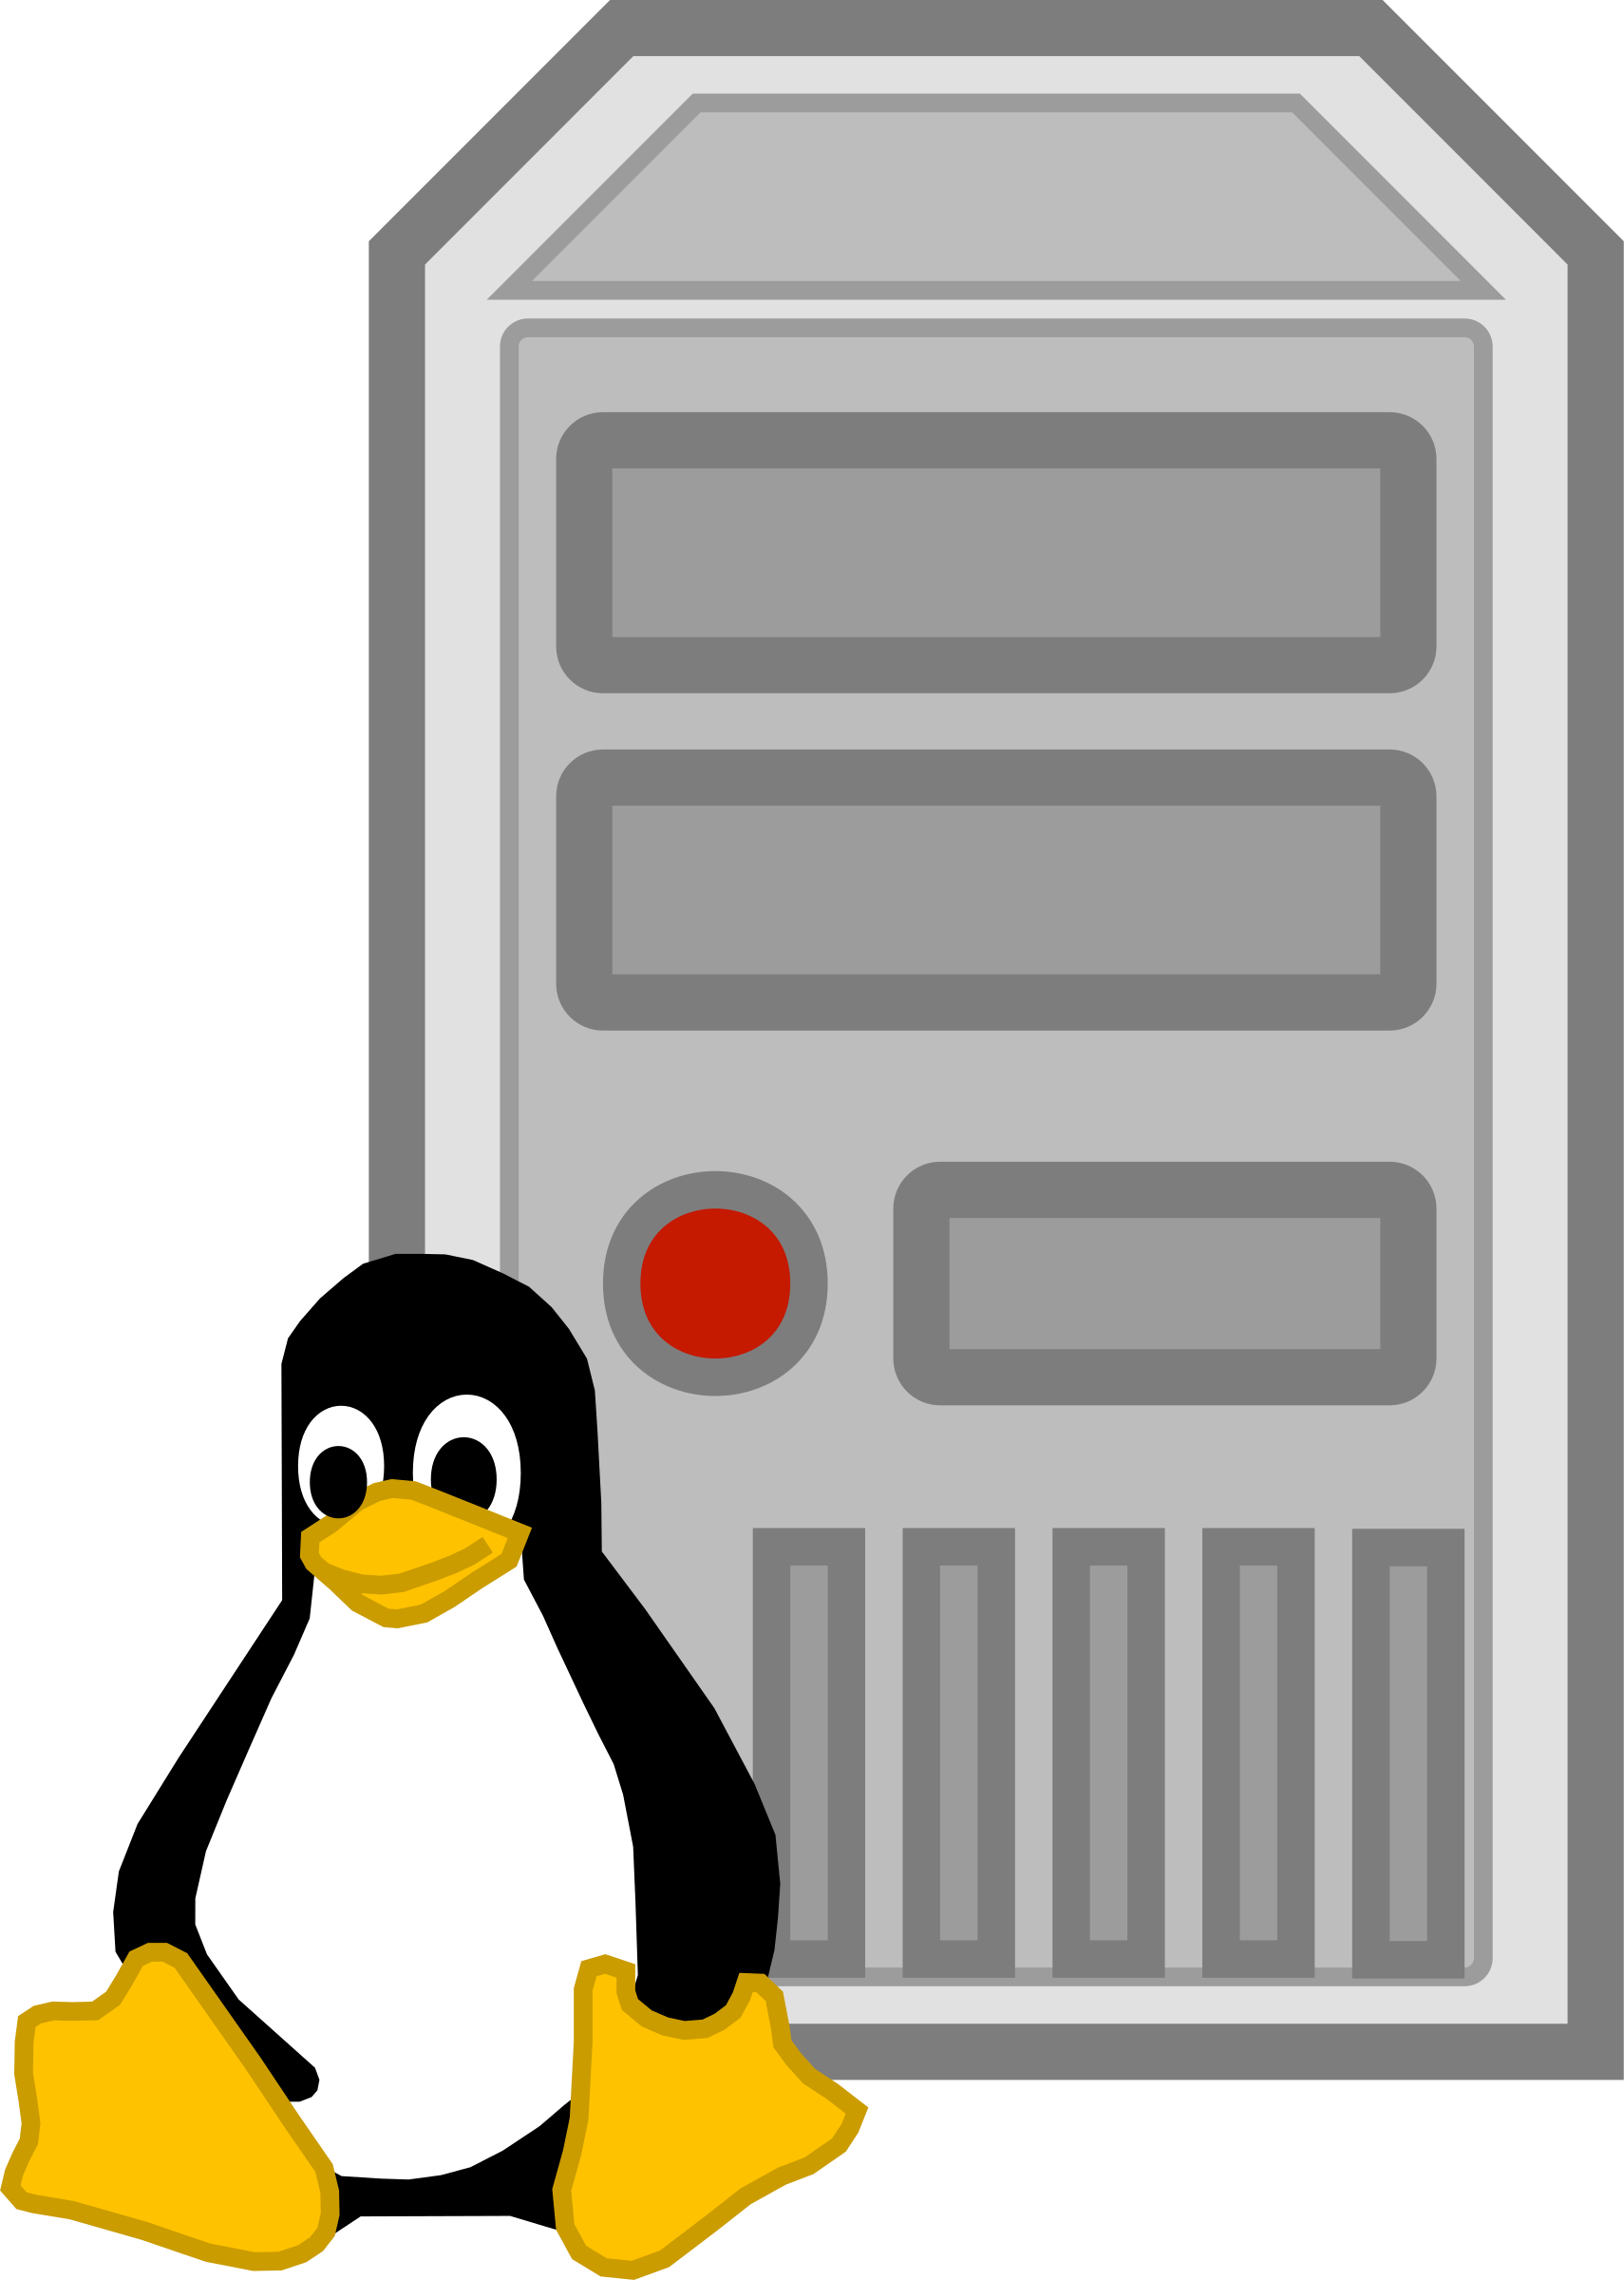 Linux clipart #5, Download drawings